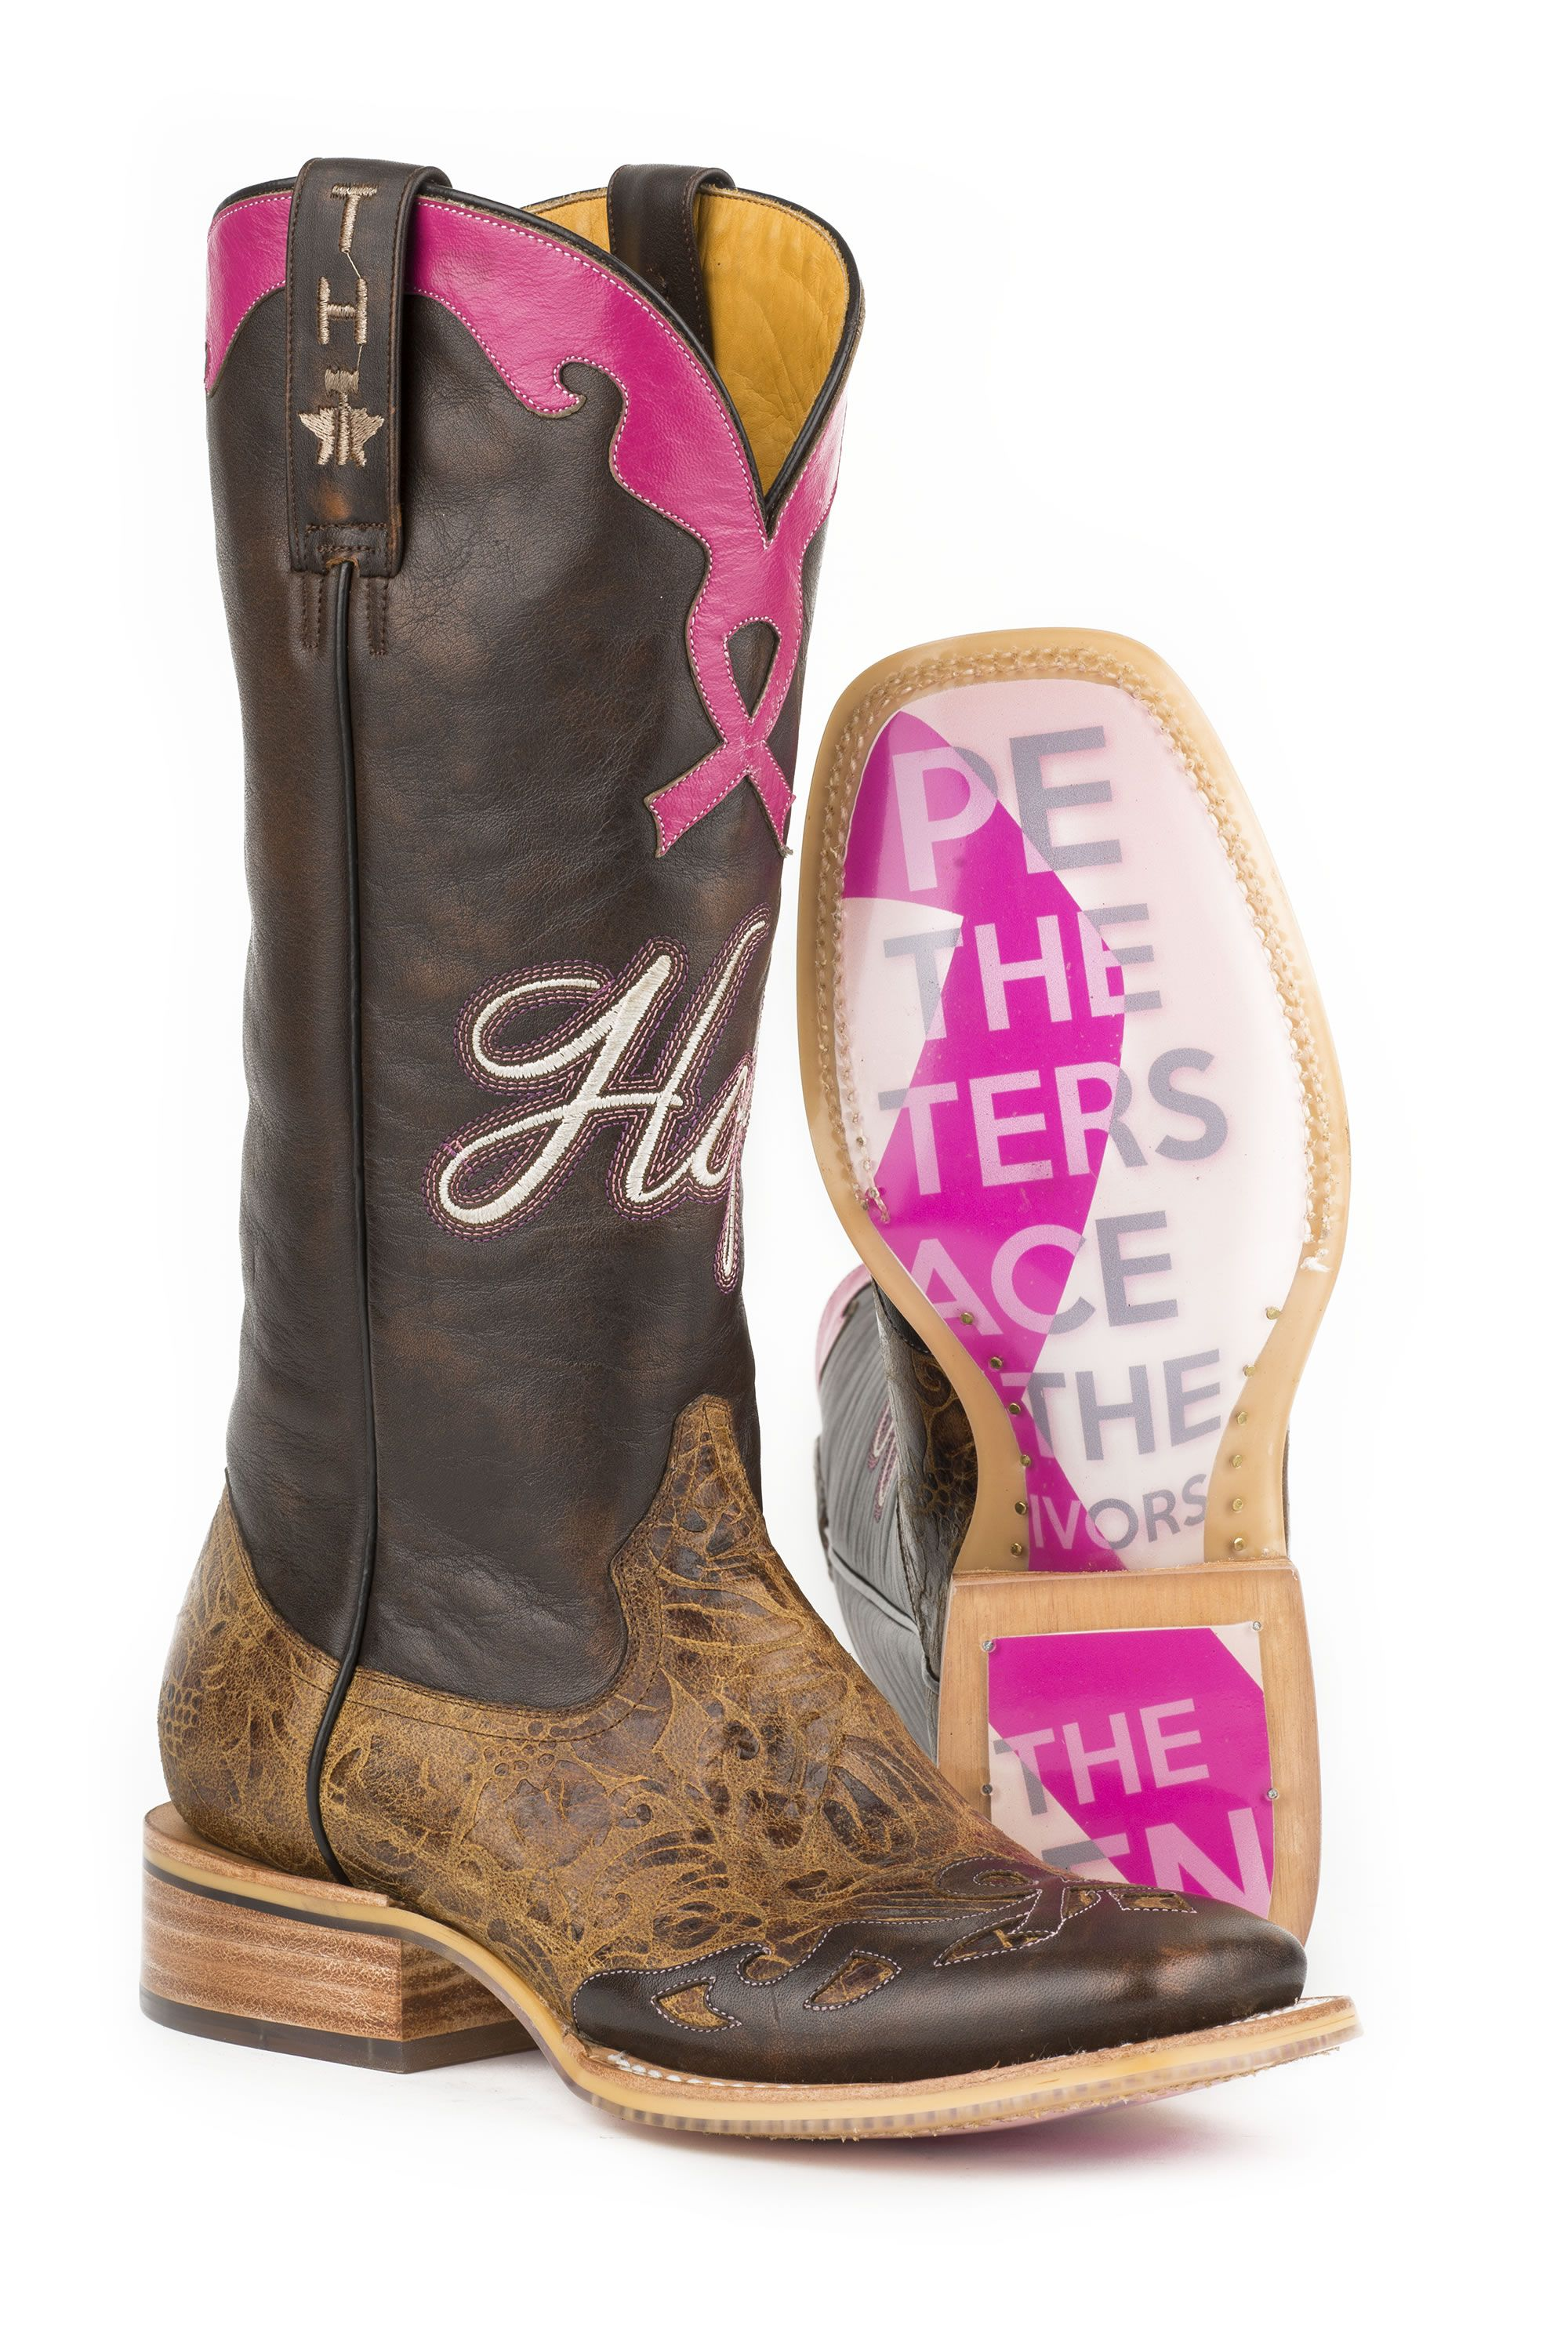 4a30297a38e Tin Haul Ladies Hope Boots w Staying Strong Sole  breastcancer  hope  boots   ladies  fashion  tinhaul  squaretoe  boots  pungoridge  westernbootsales